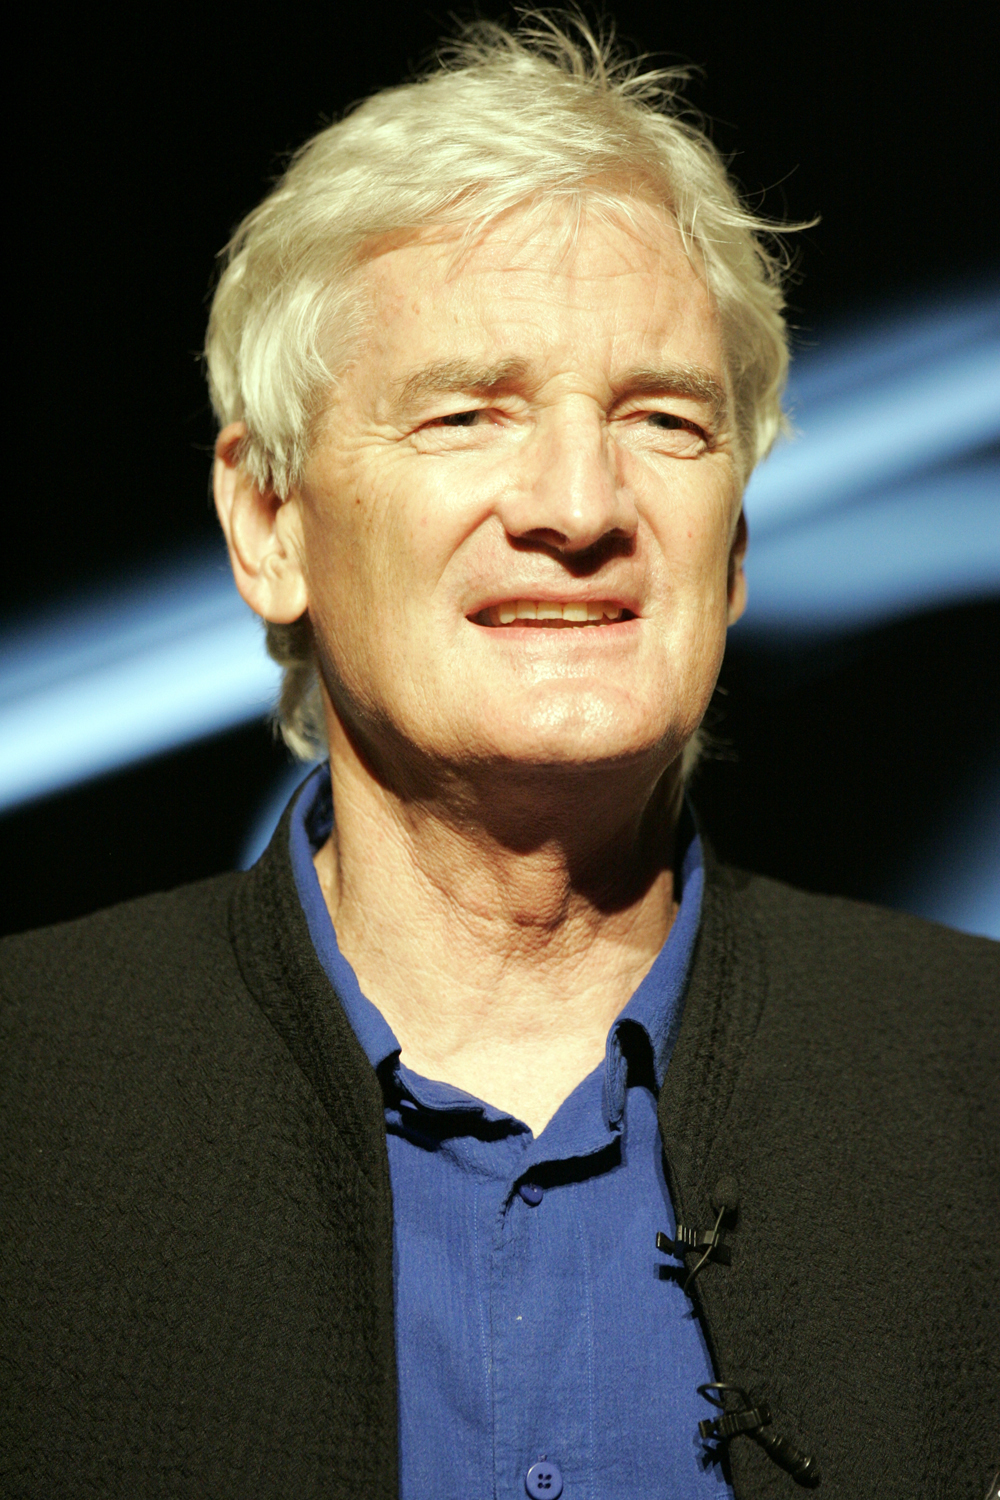 james dyson wikip dia. Black Bedroom Furniture Sets. Home Design Ideas